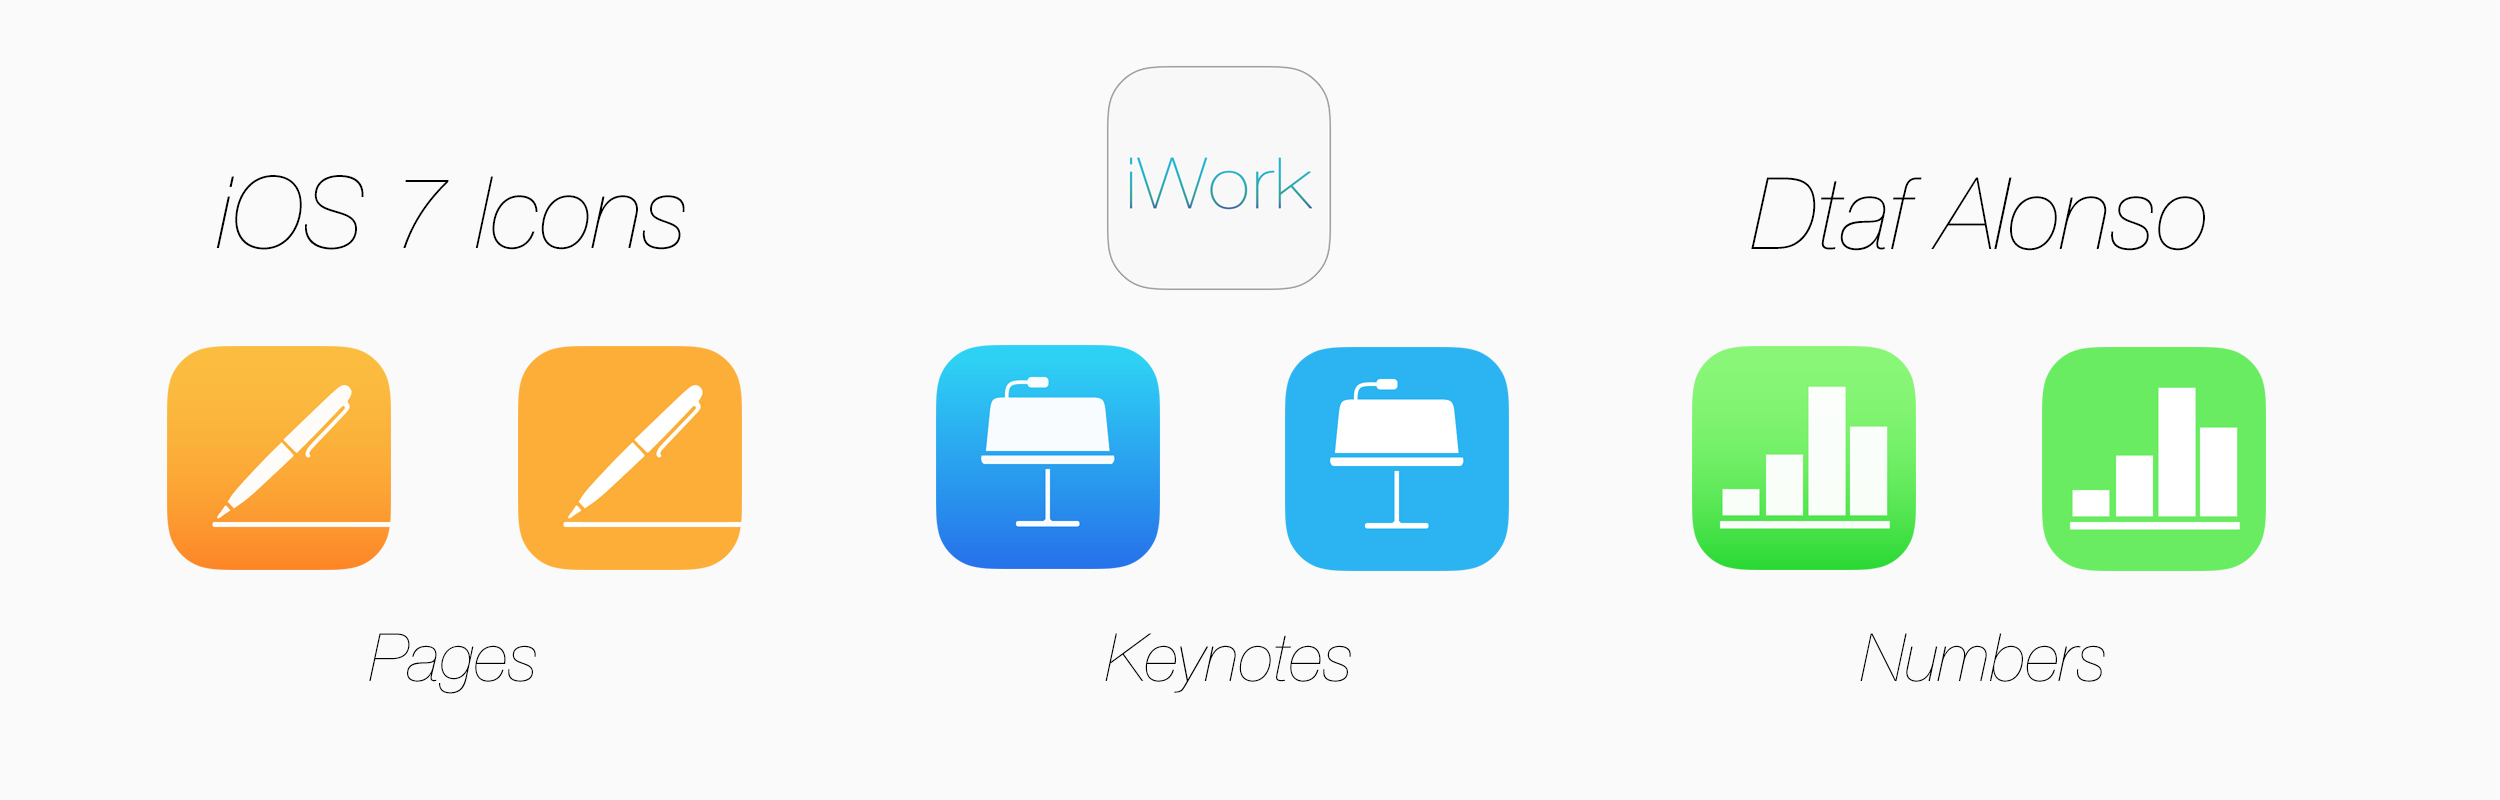 iWork icons by dtafalonso